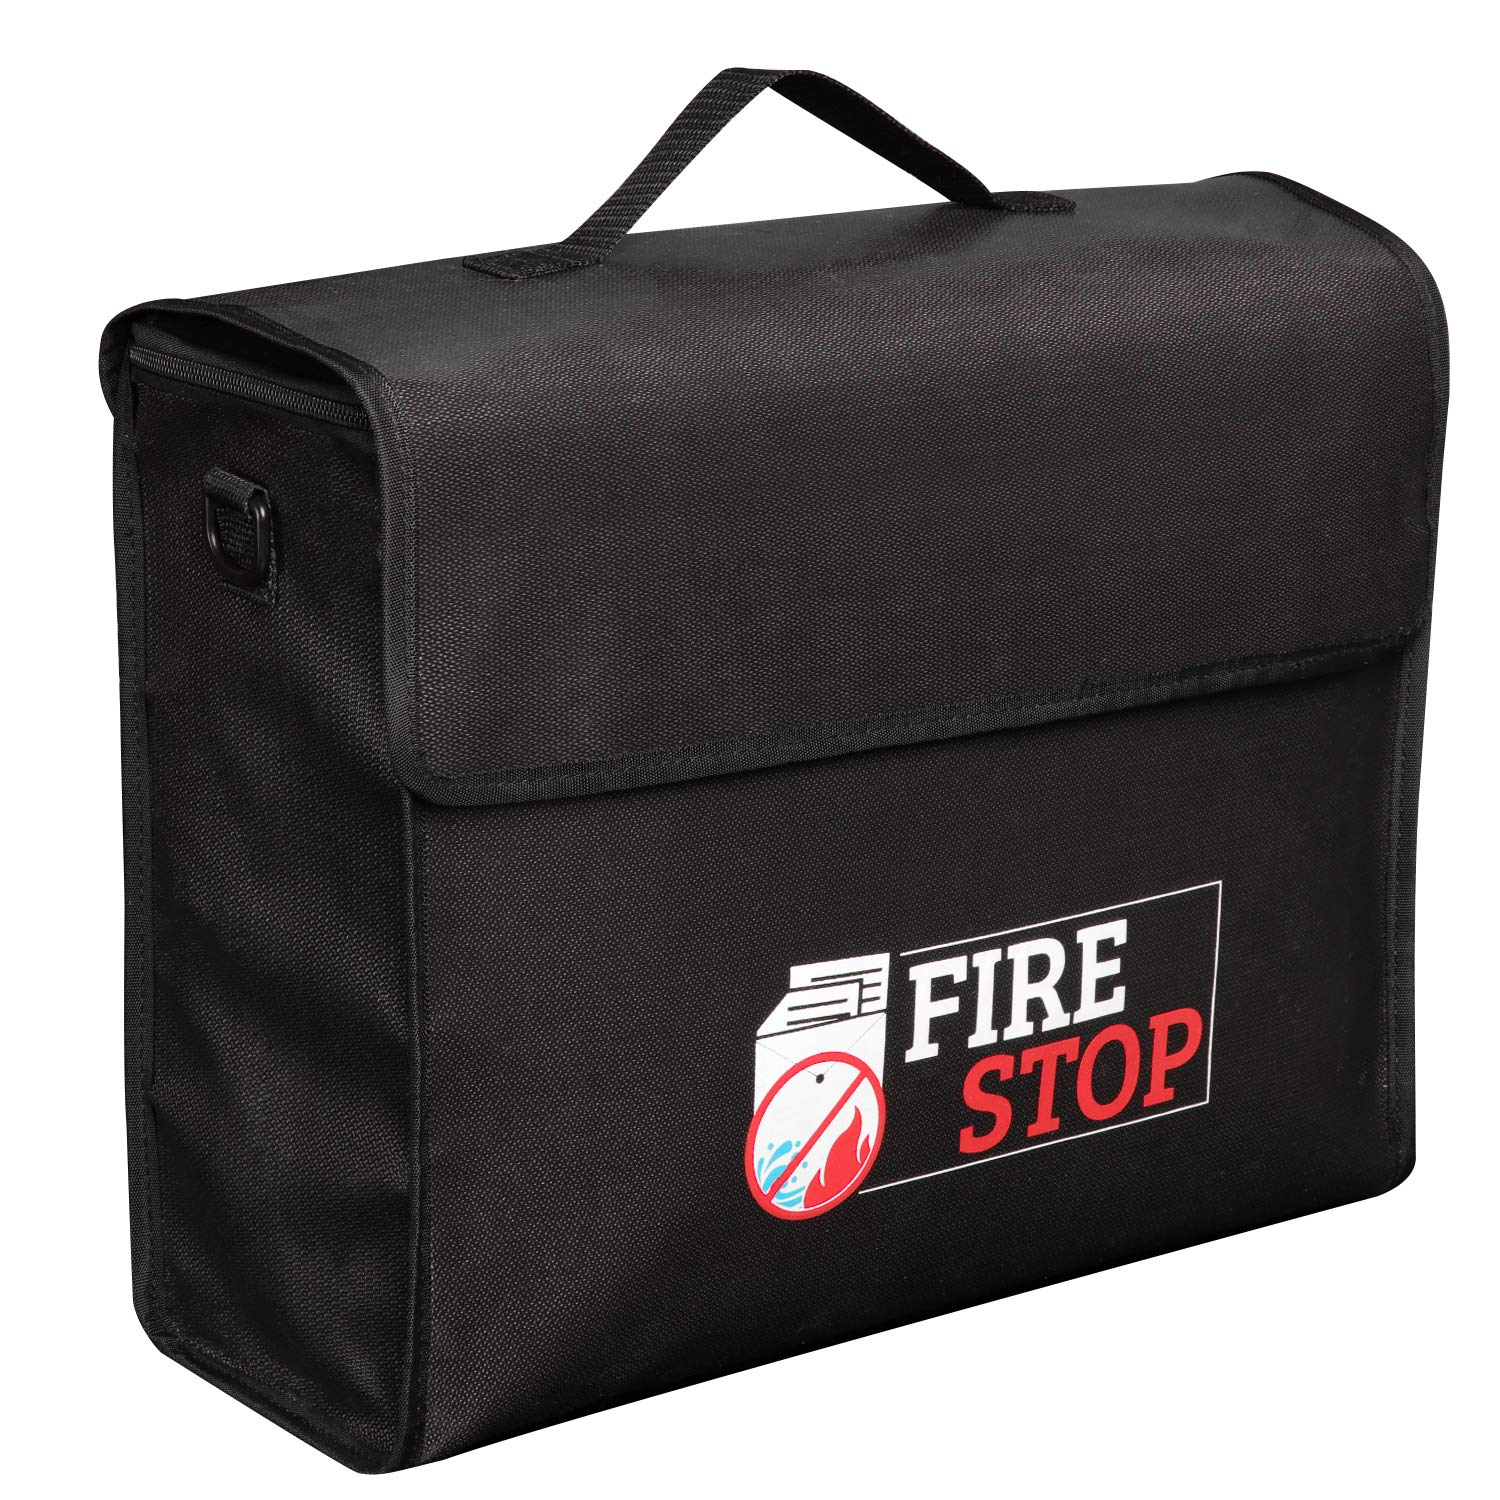 Extra Large (15''x 12''x 5'') FireStop Fireproof Money & Document Bag with Zipper Lock, Portable Fire & Water Resistant Non-Itchy Folder Safe Storage Pouch for Cash, Files, Passport, Jewelry & Valuables by FireStop